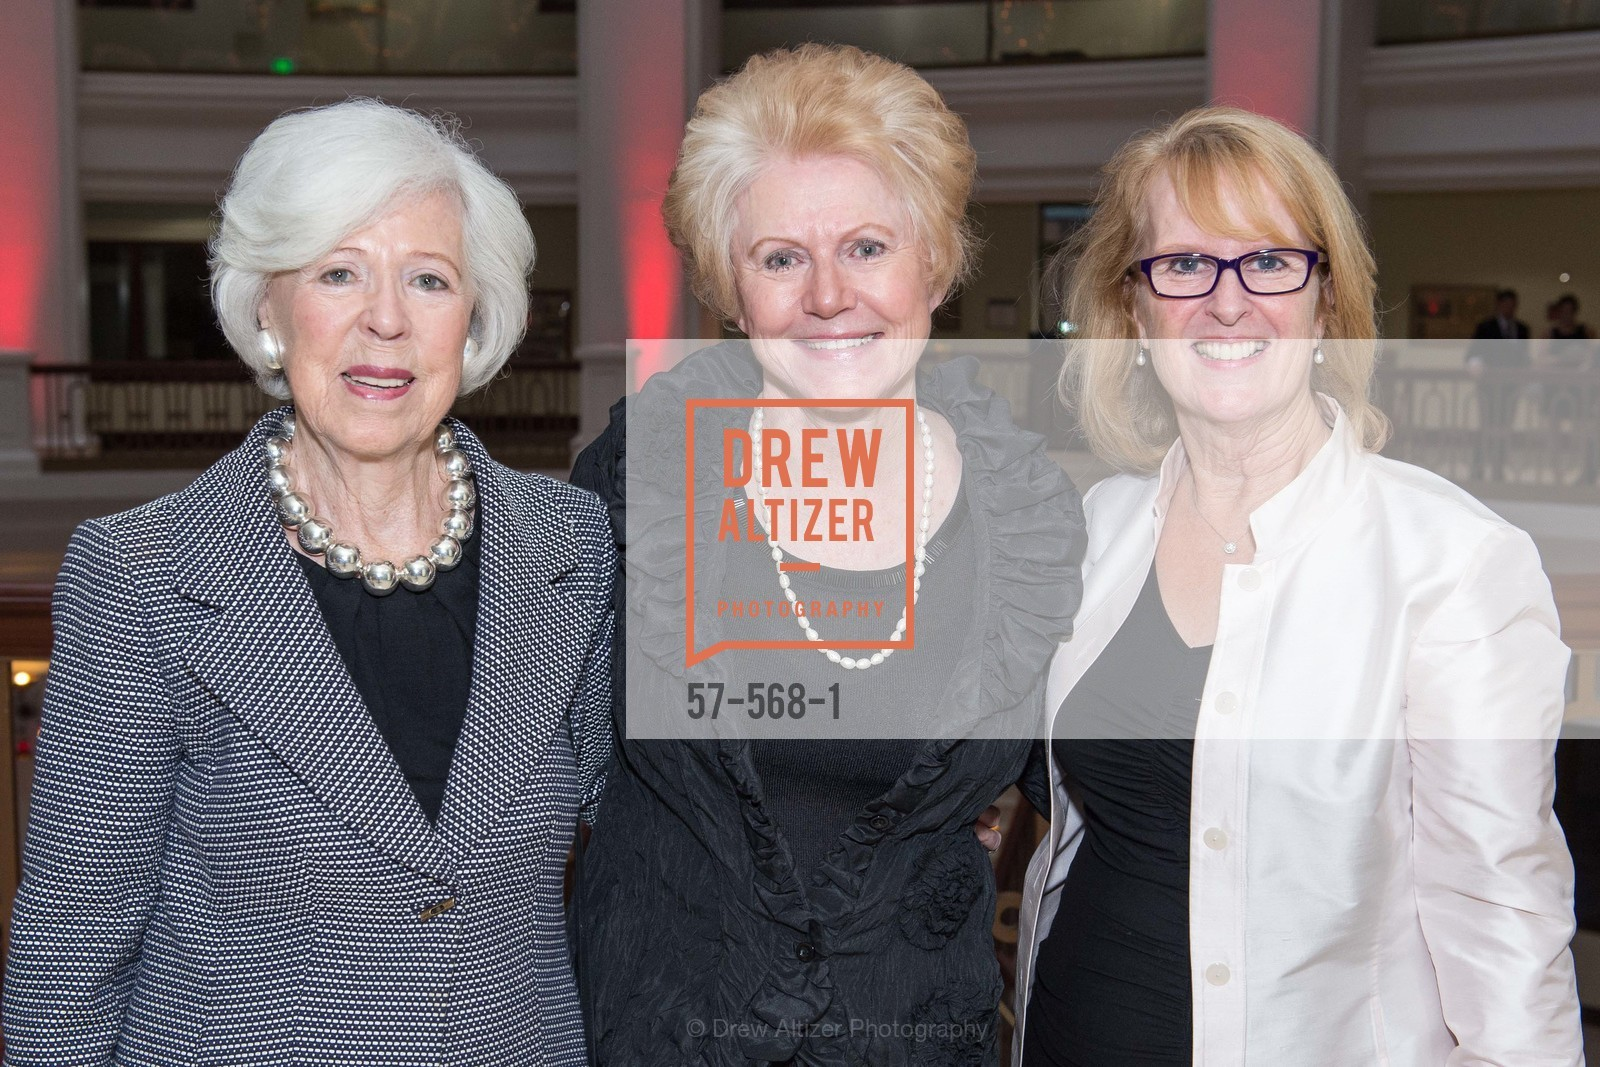 Margaret Hauben, Lois Dedemenico, Susan Smart, SOTHEBY'S  Hosts a Private Viewing of Highlights from the Collection of MRS. PAUL MELLON, US, September 17th, 2014,Drew Altizer, Drew Altizer Photography, full-service agency, private events, San Francisco photographer, photographer california